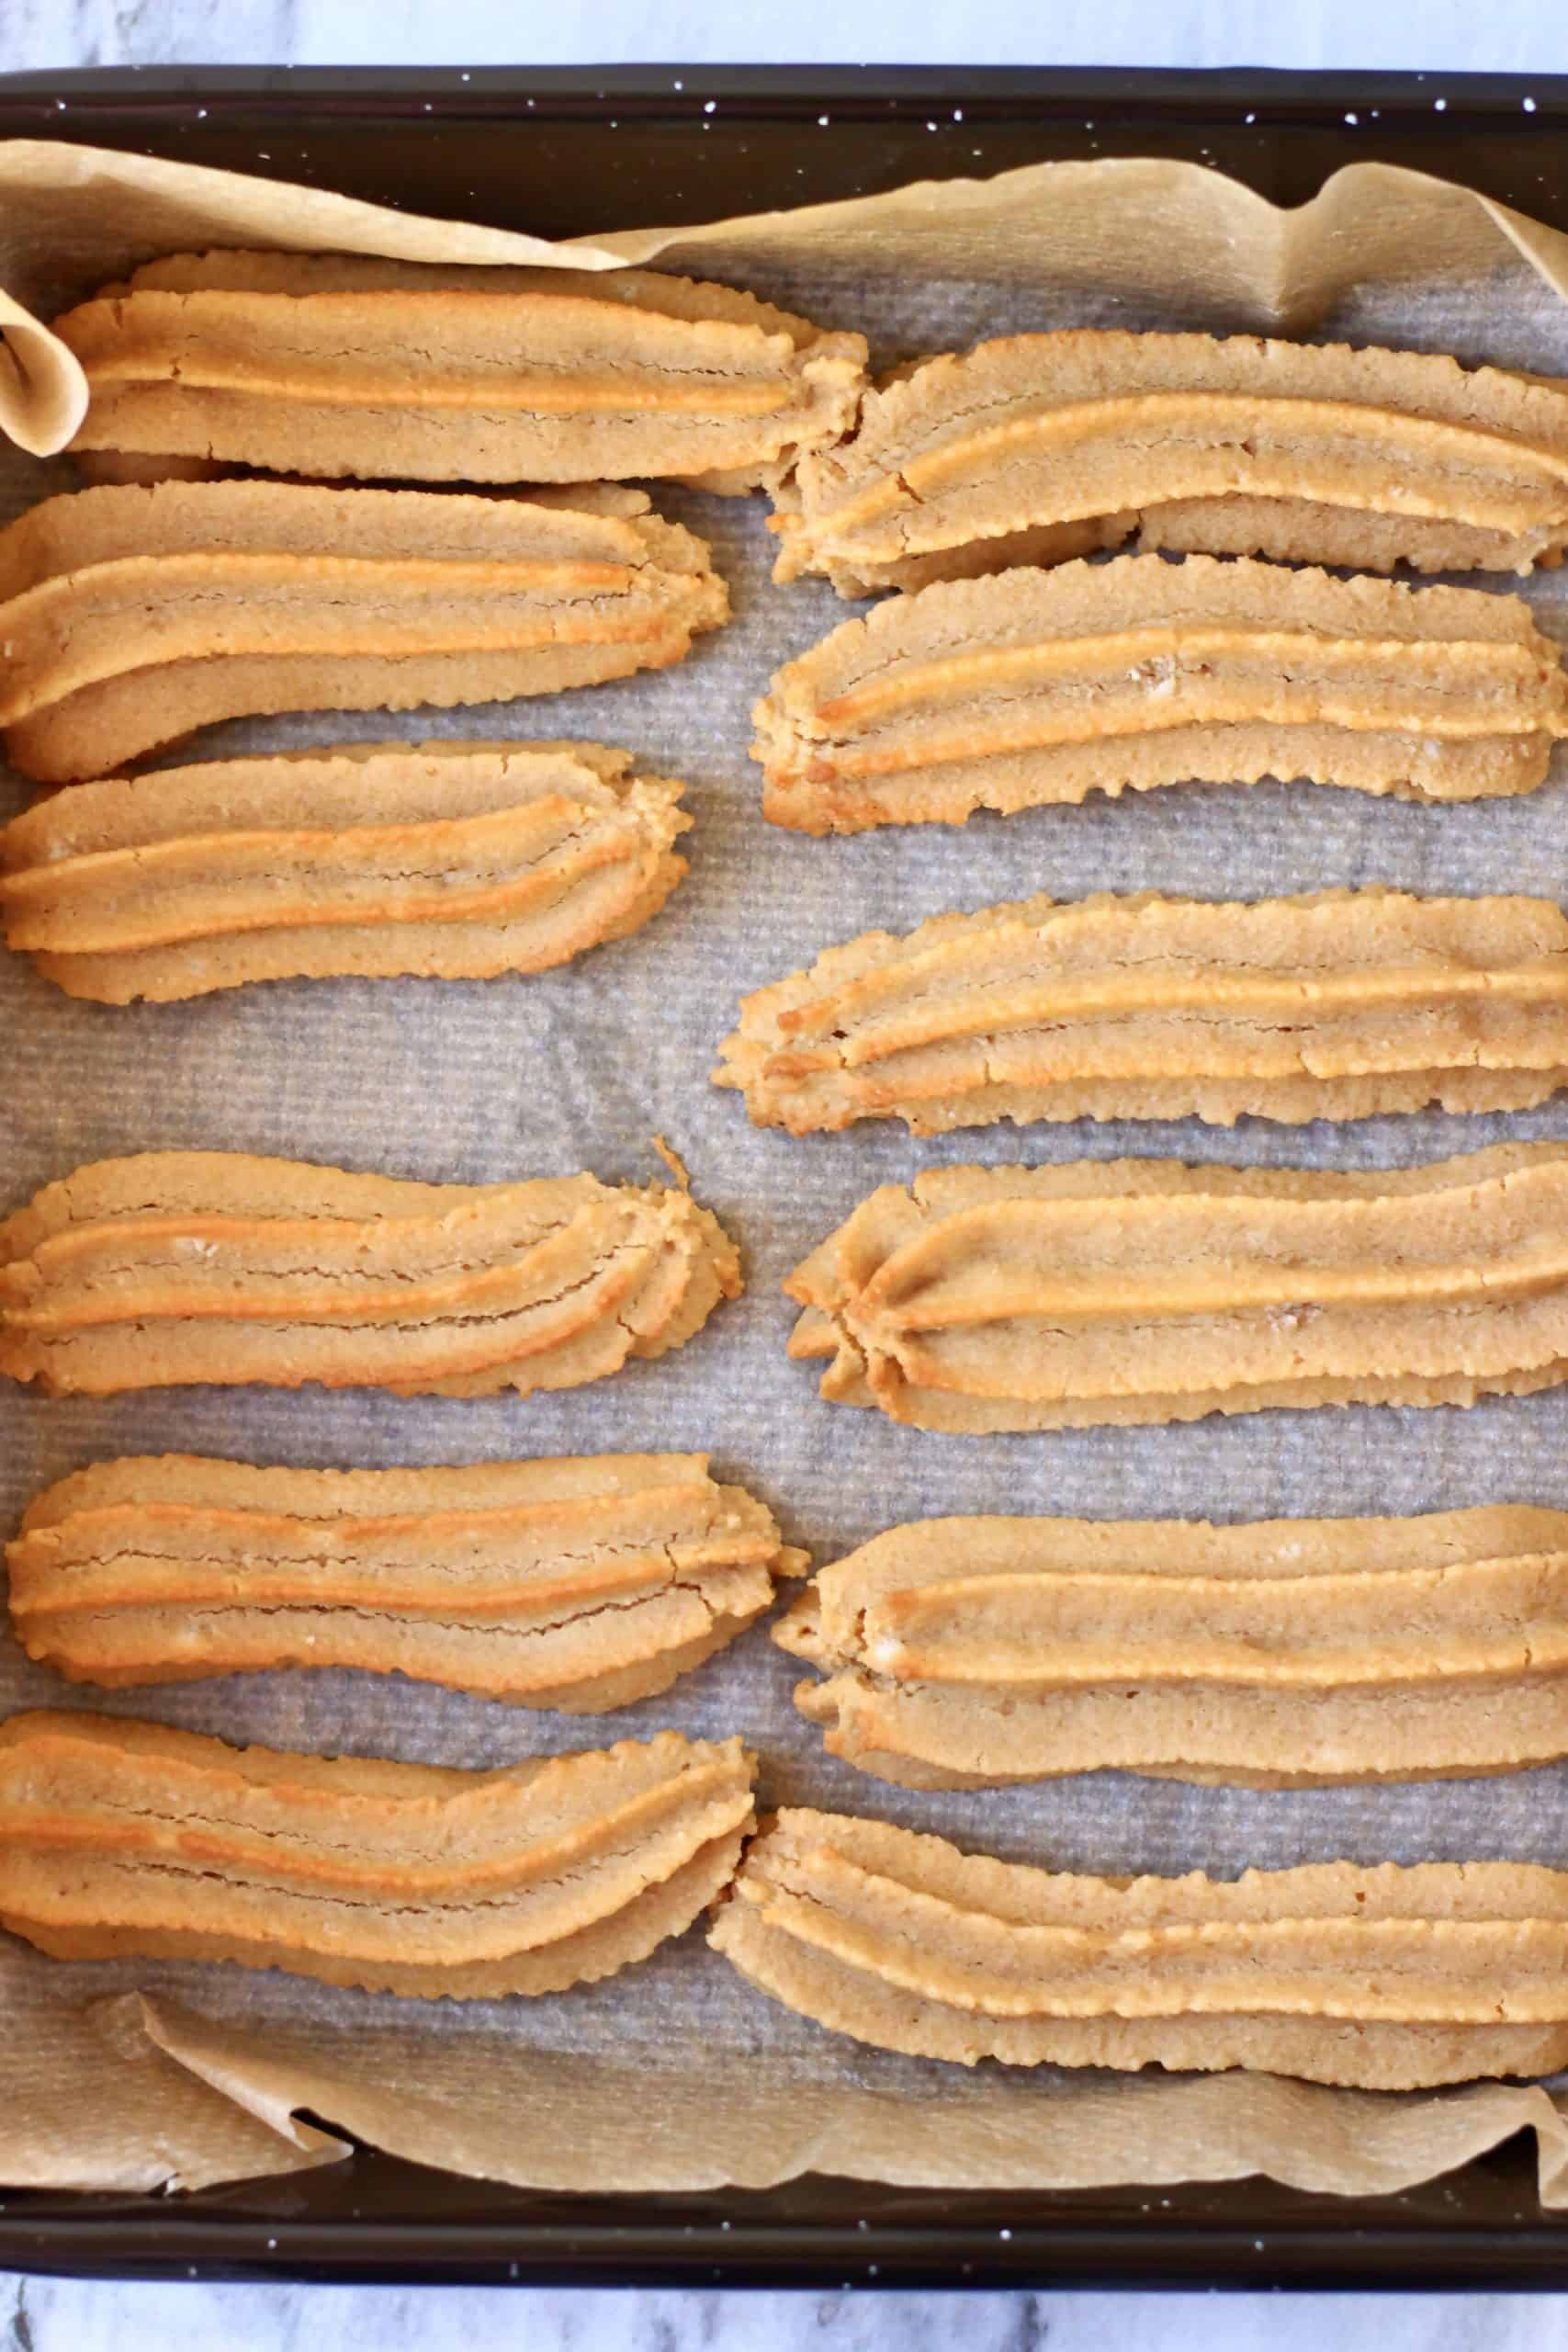 Twelve baked gluten-free vegan churros on a baking tray lined with baking paper